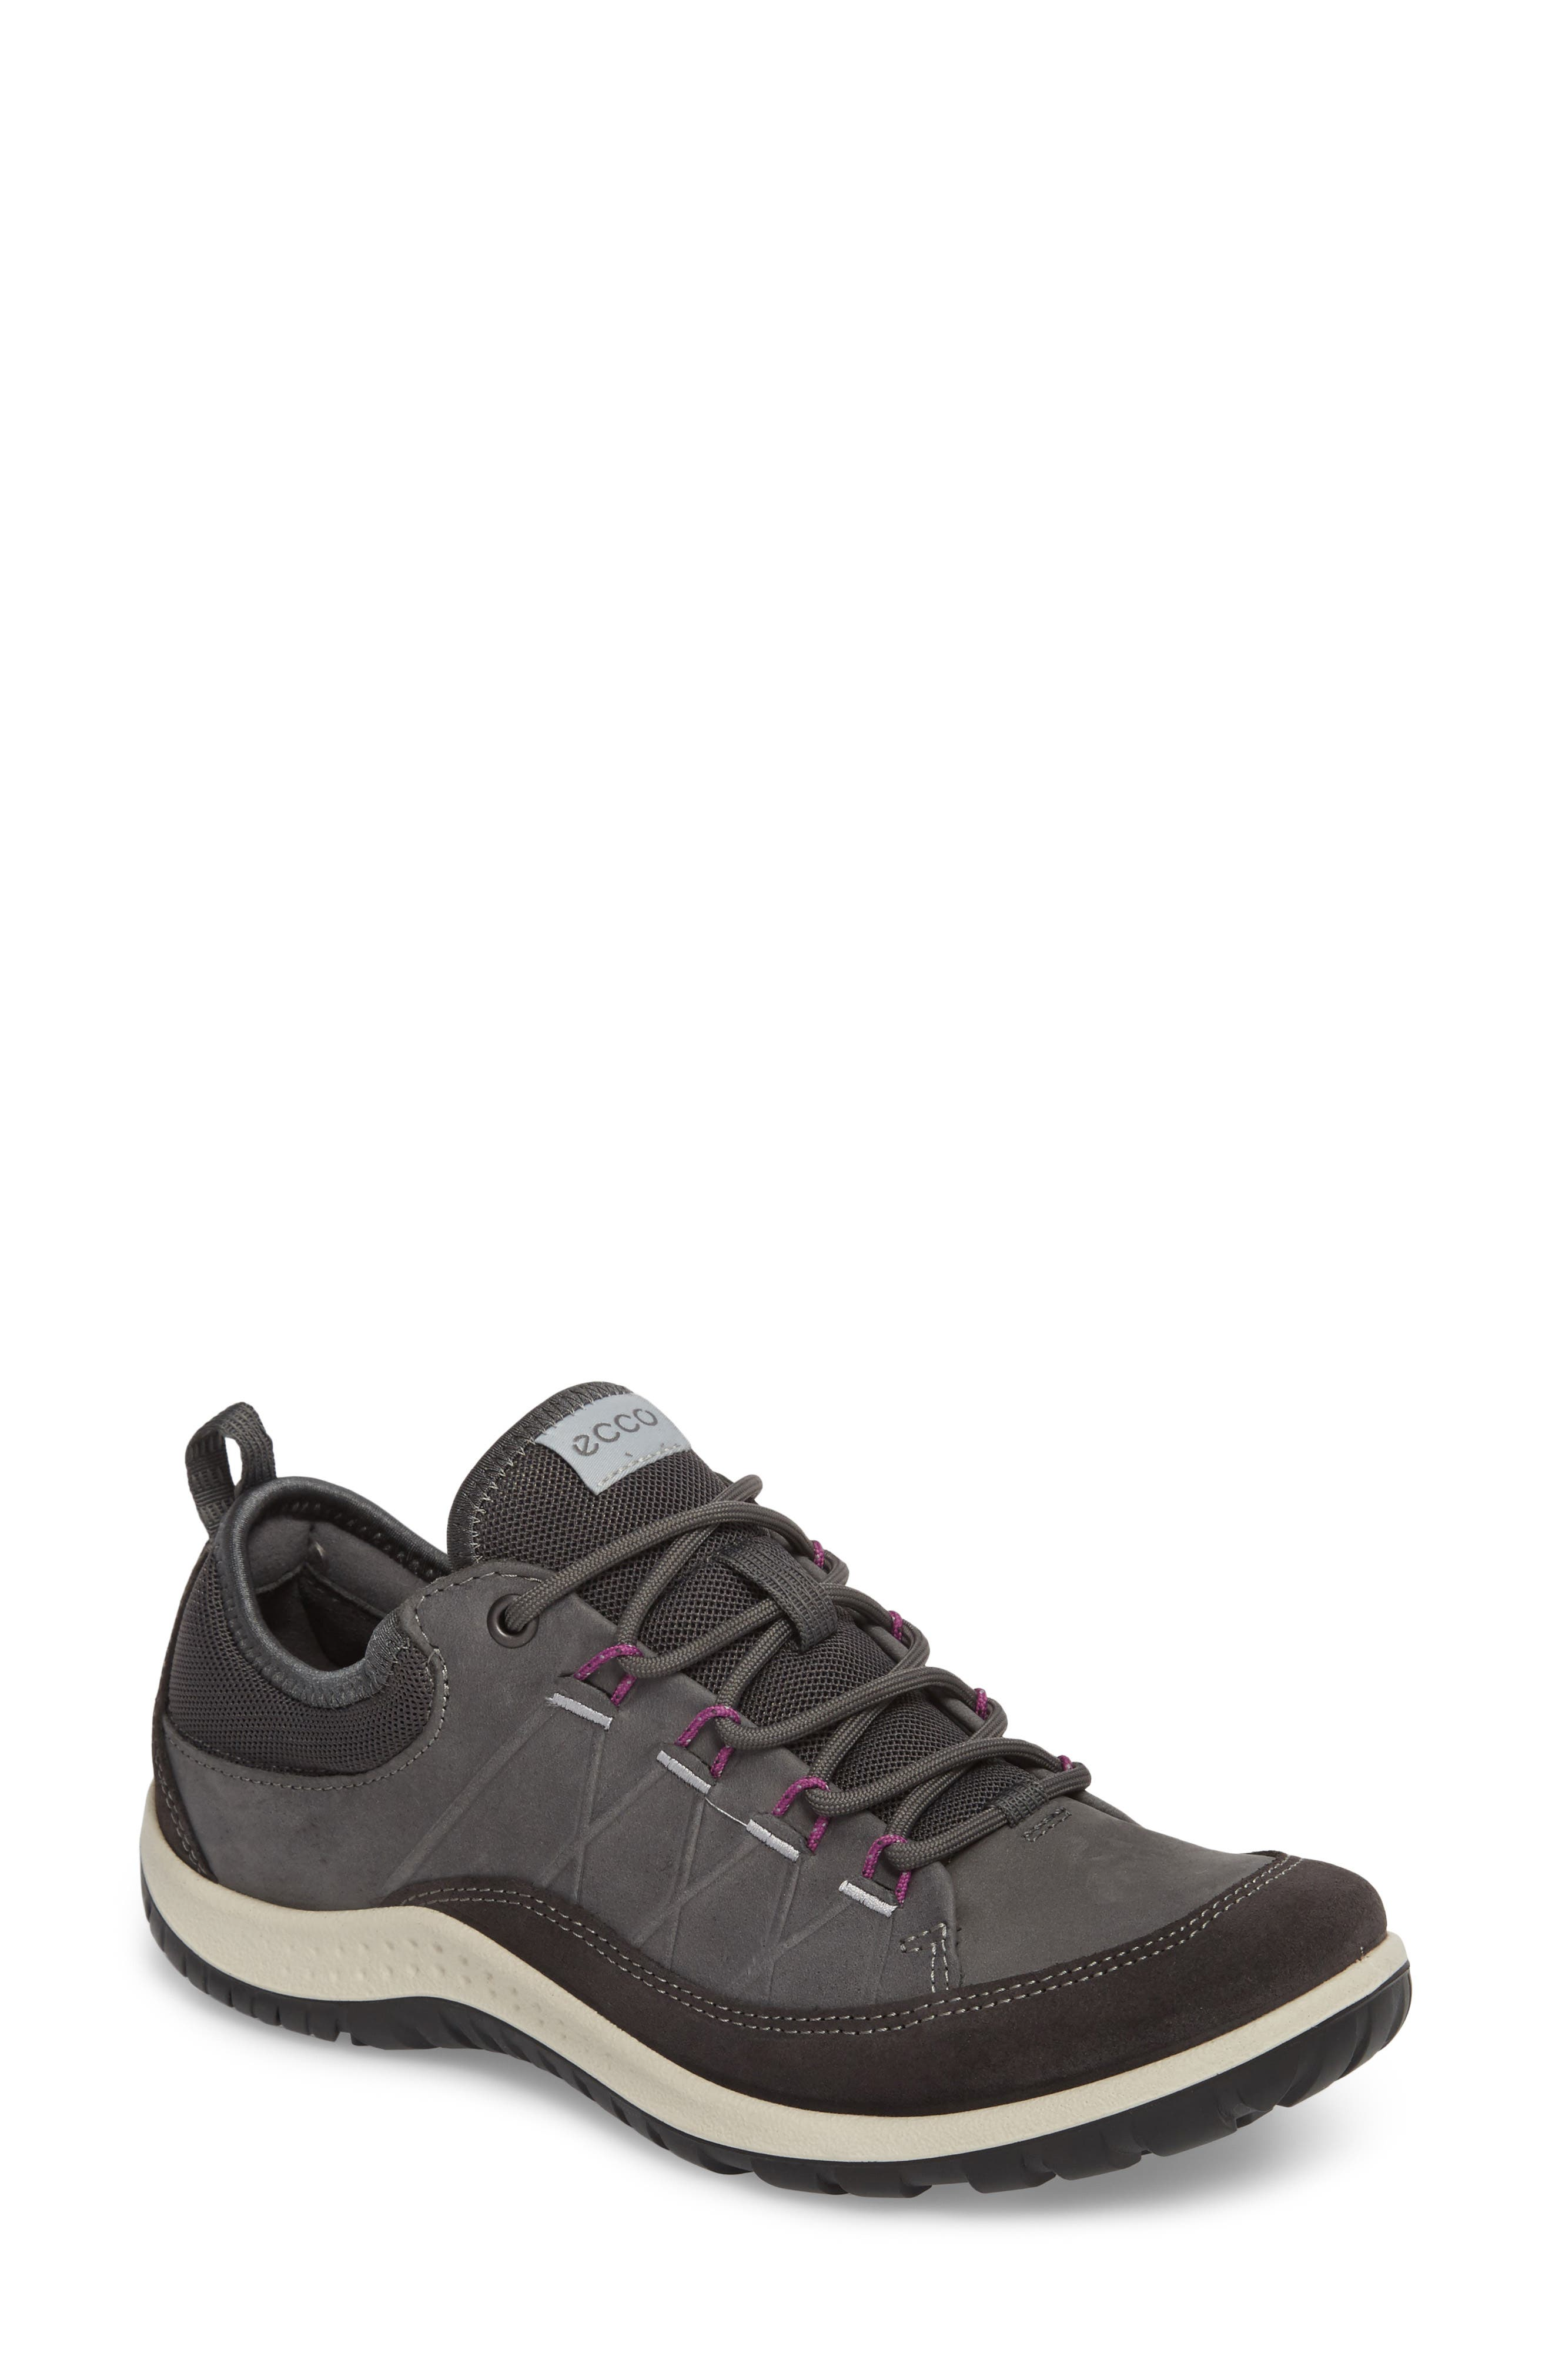 'Aspina' Sneaker,                         Main,                         color, Moonless Leather